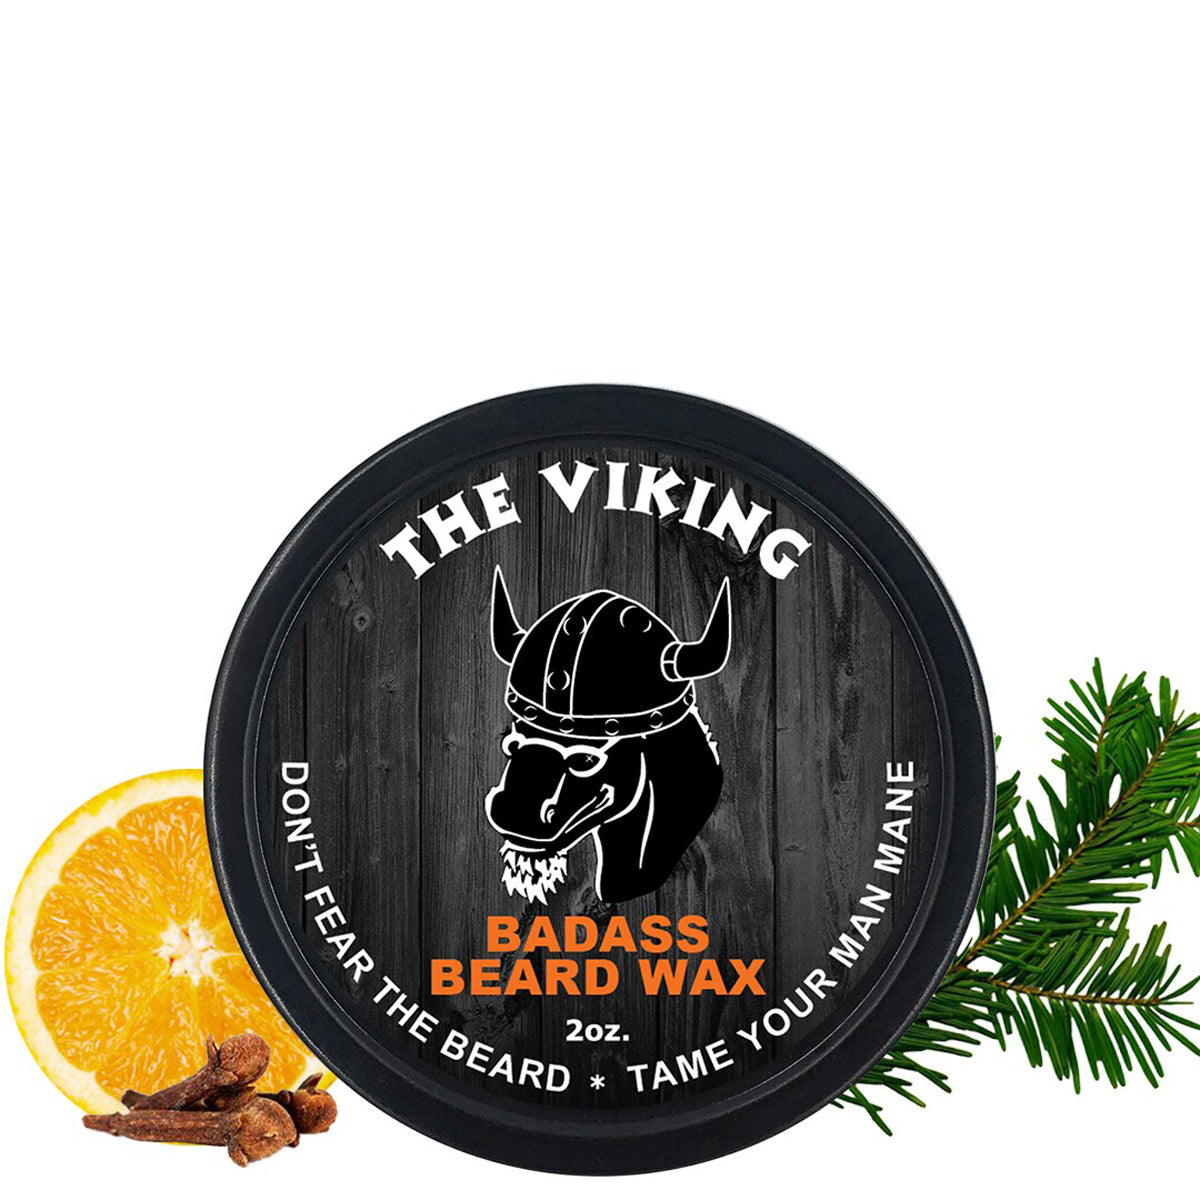 Badass Beard Wax - The Viking